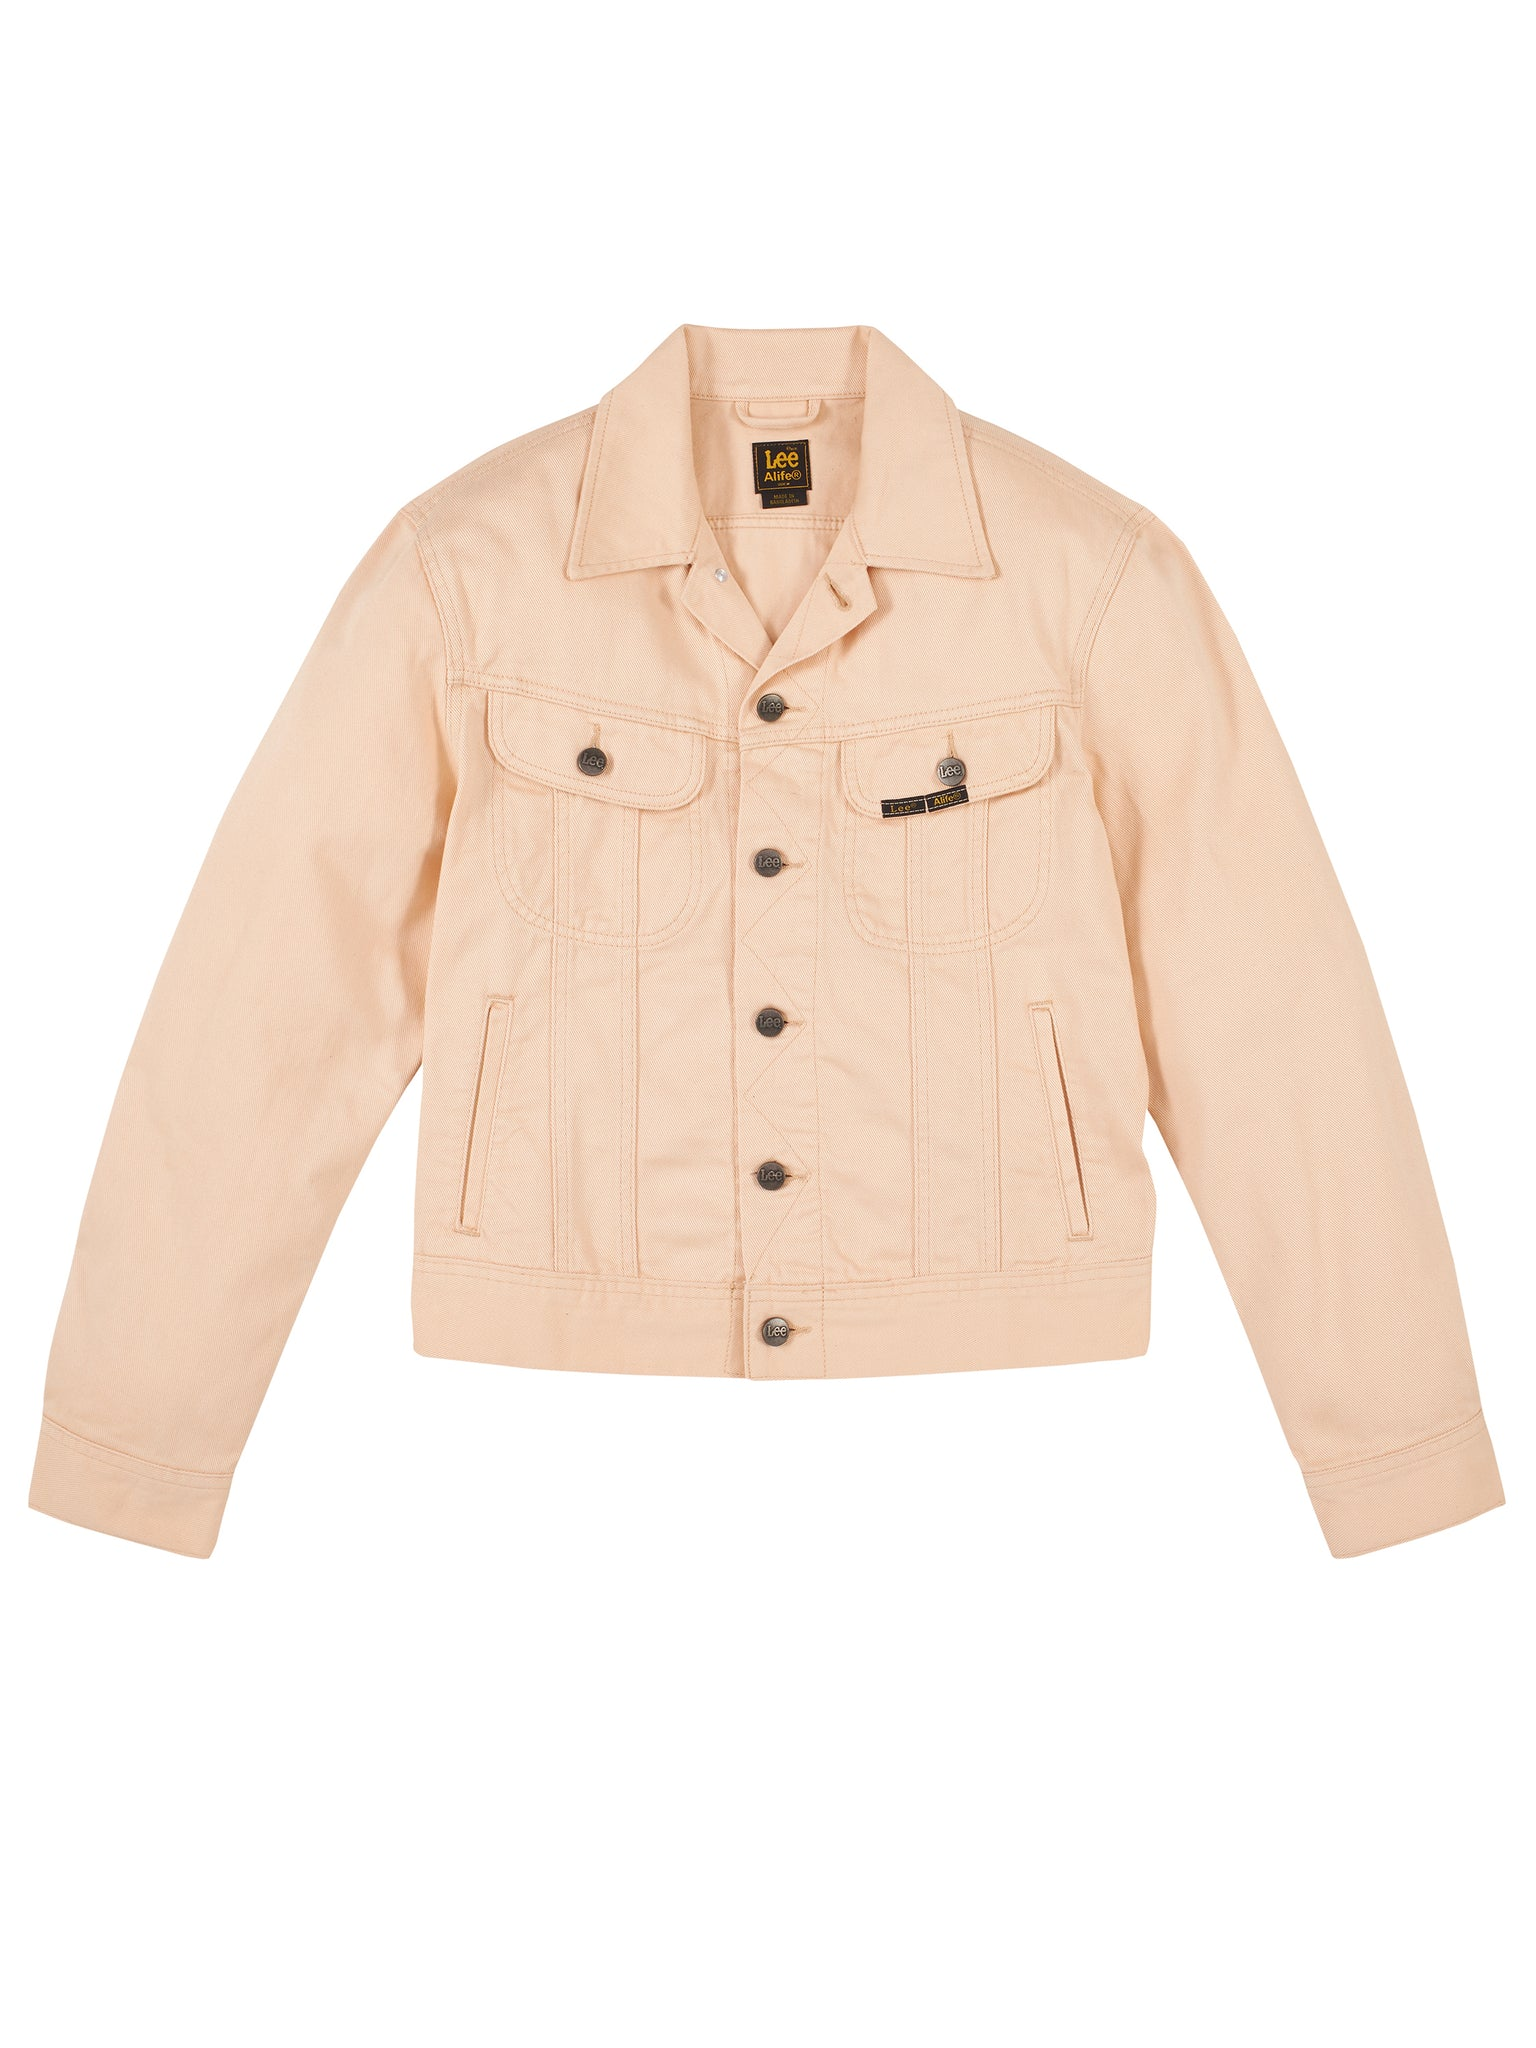 Alife/Lee Colored Cotton Twill Jacket in Beige Front